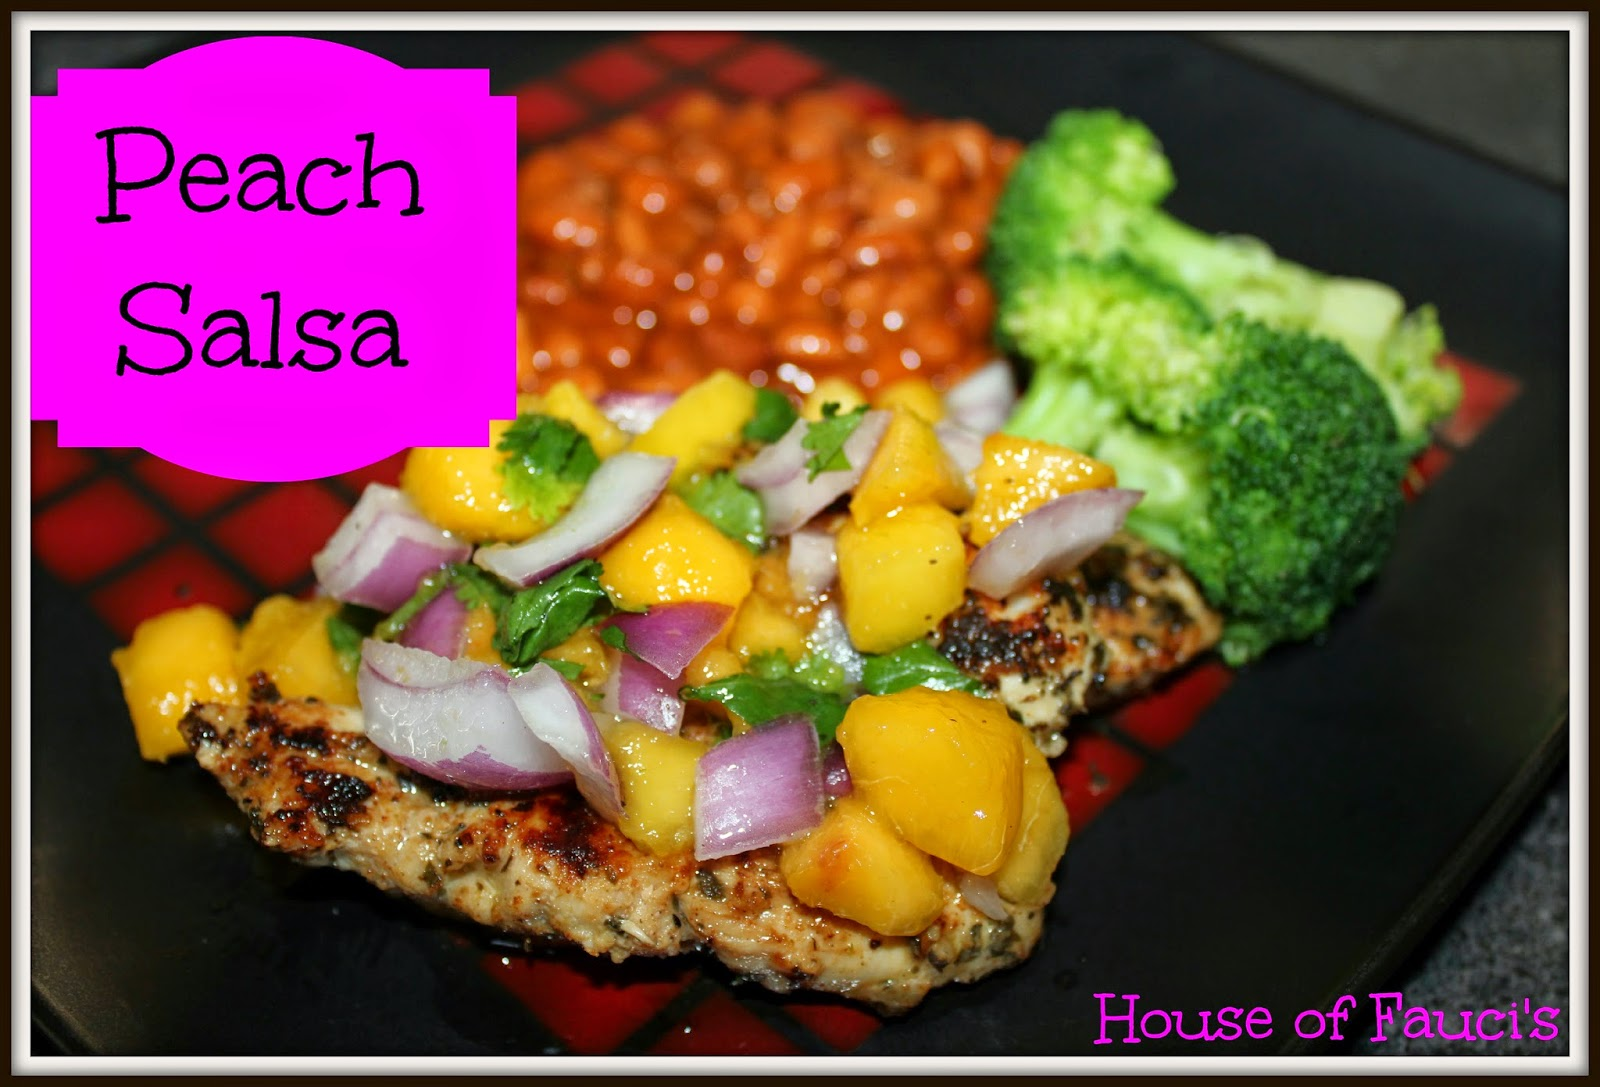 House of Fauci's: Peach Salsa - A 'House of Fauci's' Pin ...